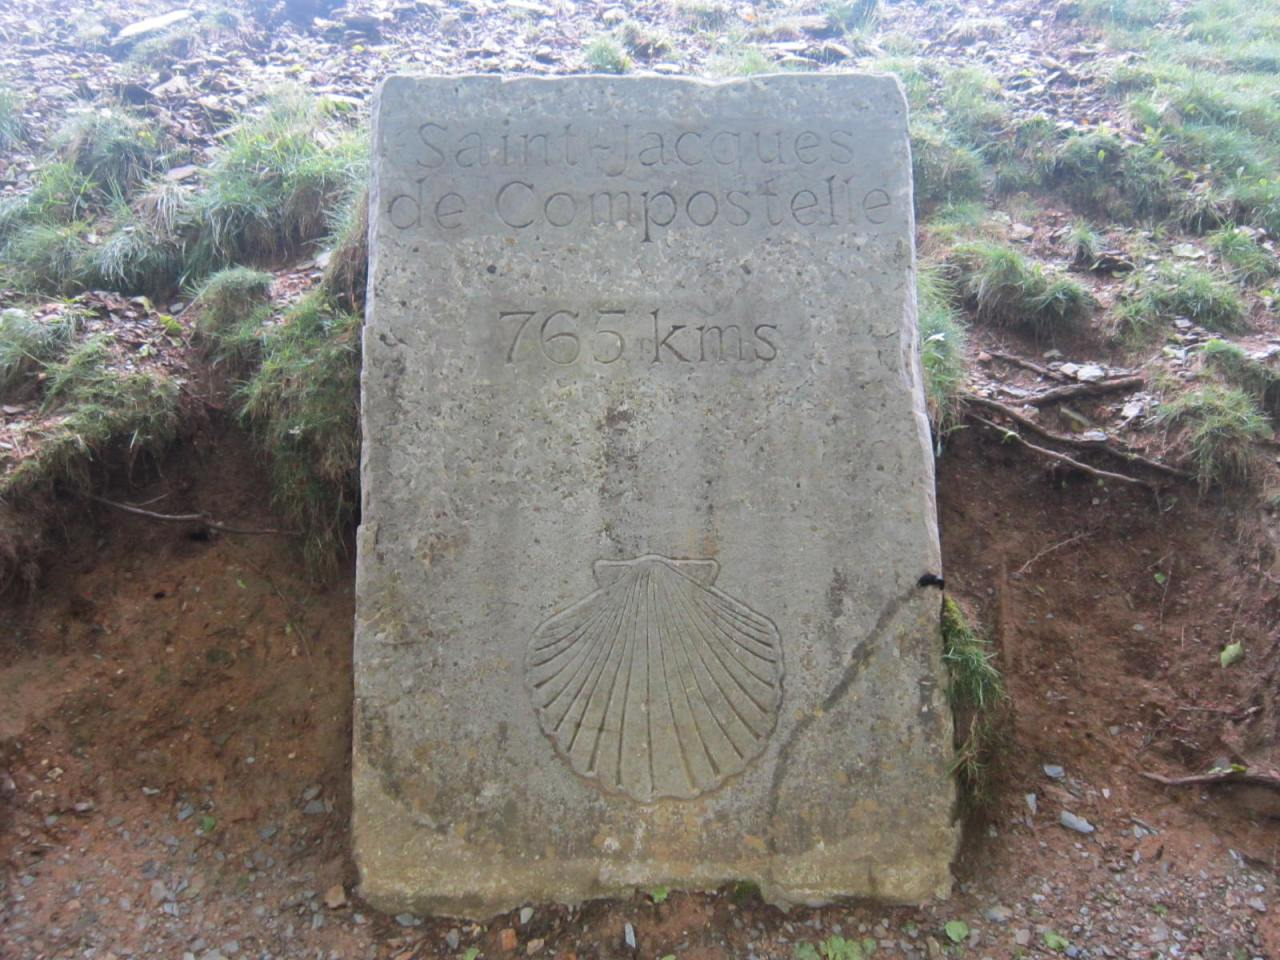 765km stone marker to Santiago de Compostela as you cross into Navarre on the first day on the Camino Frances/FrenchWay